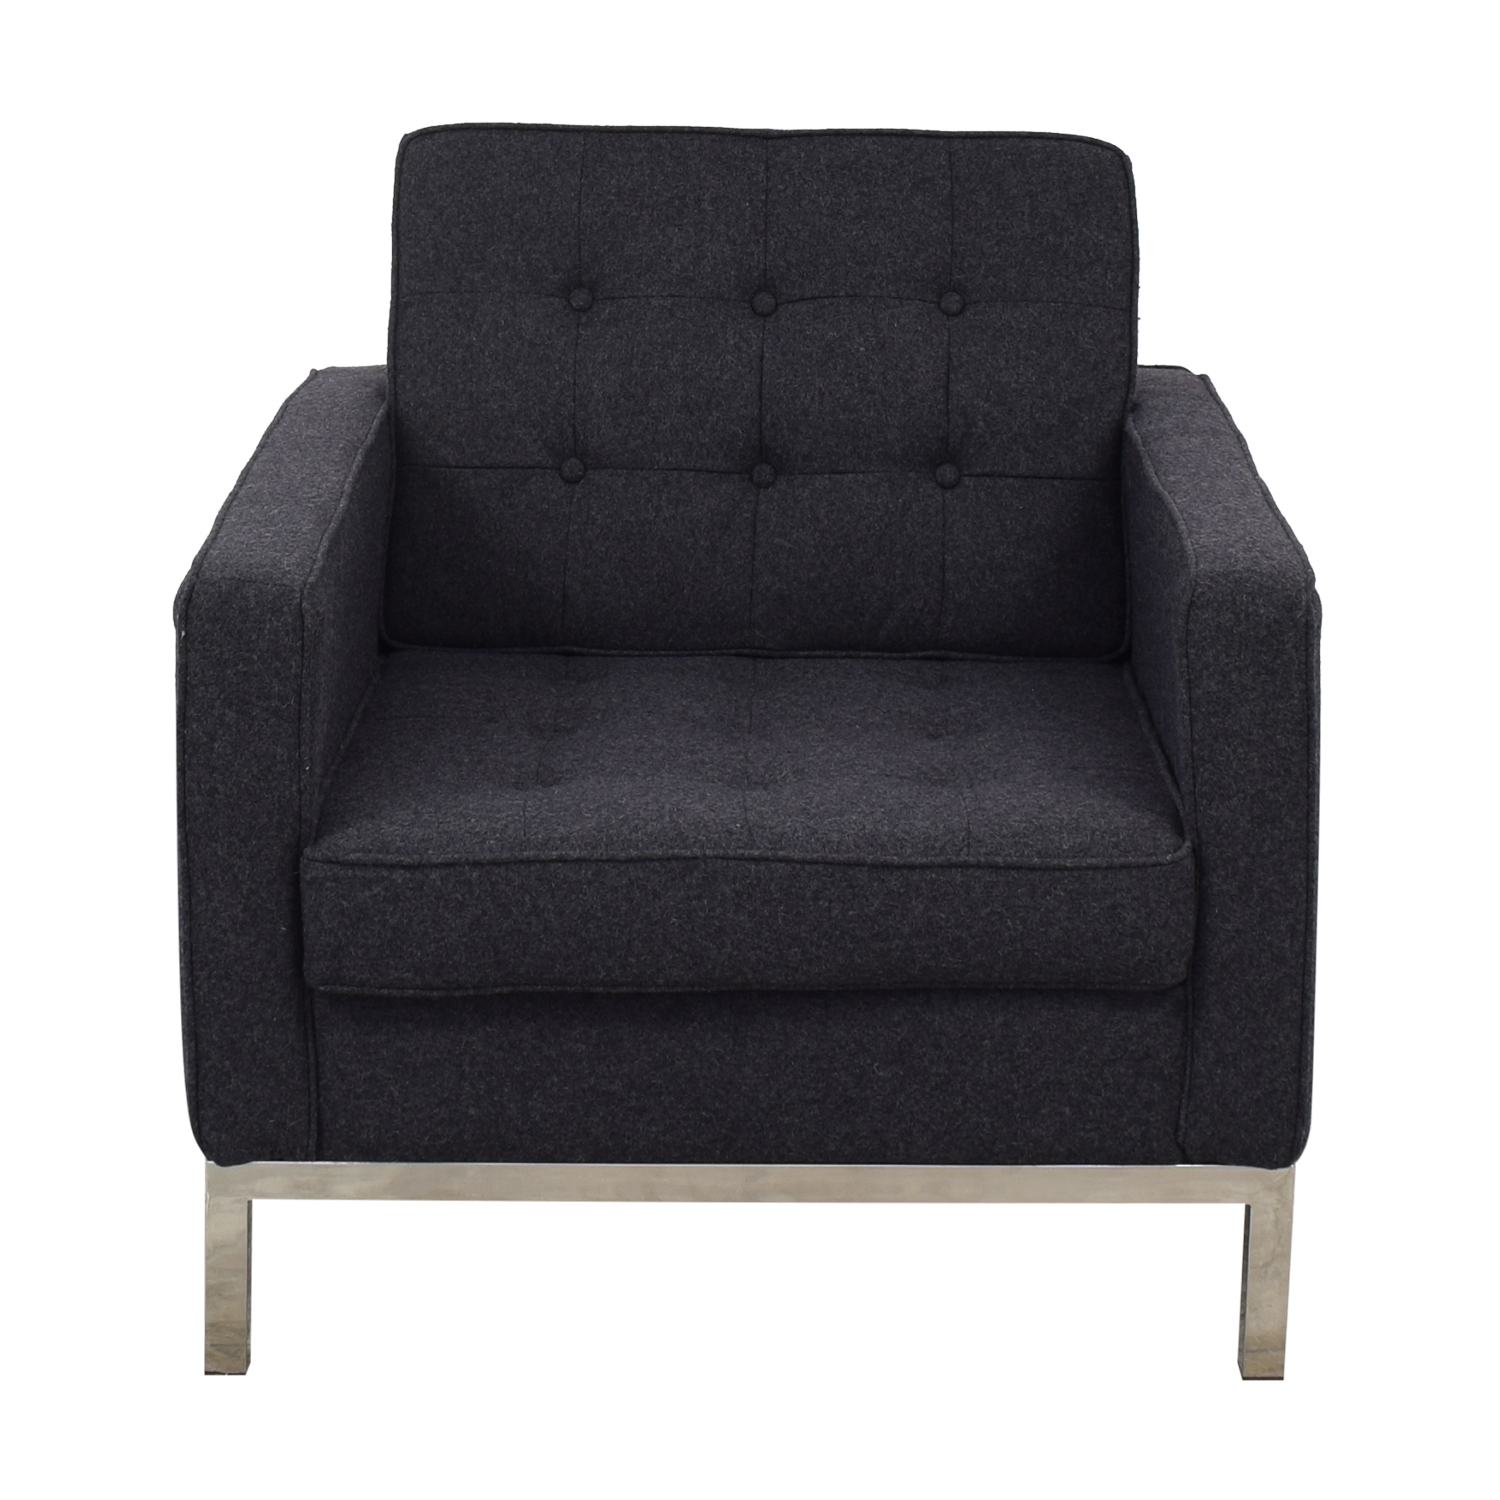 LexMod LexMod Loft Armchair in Dark Grey pa